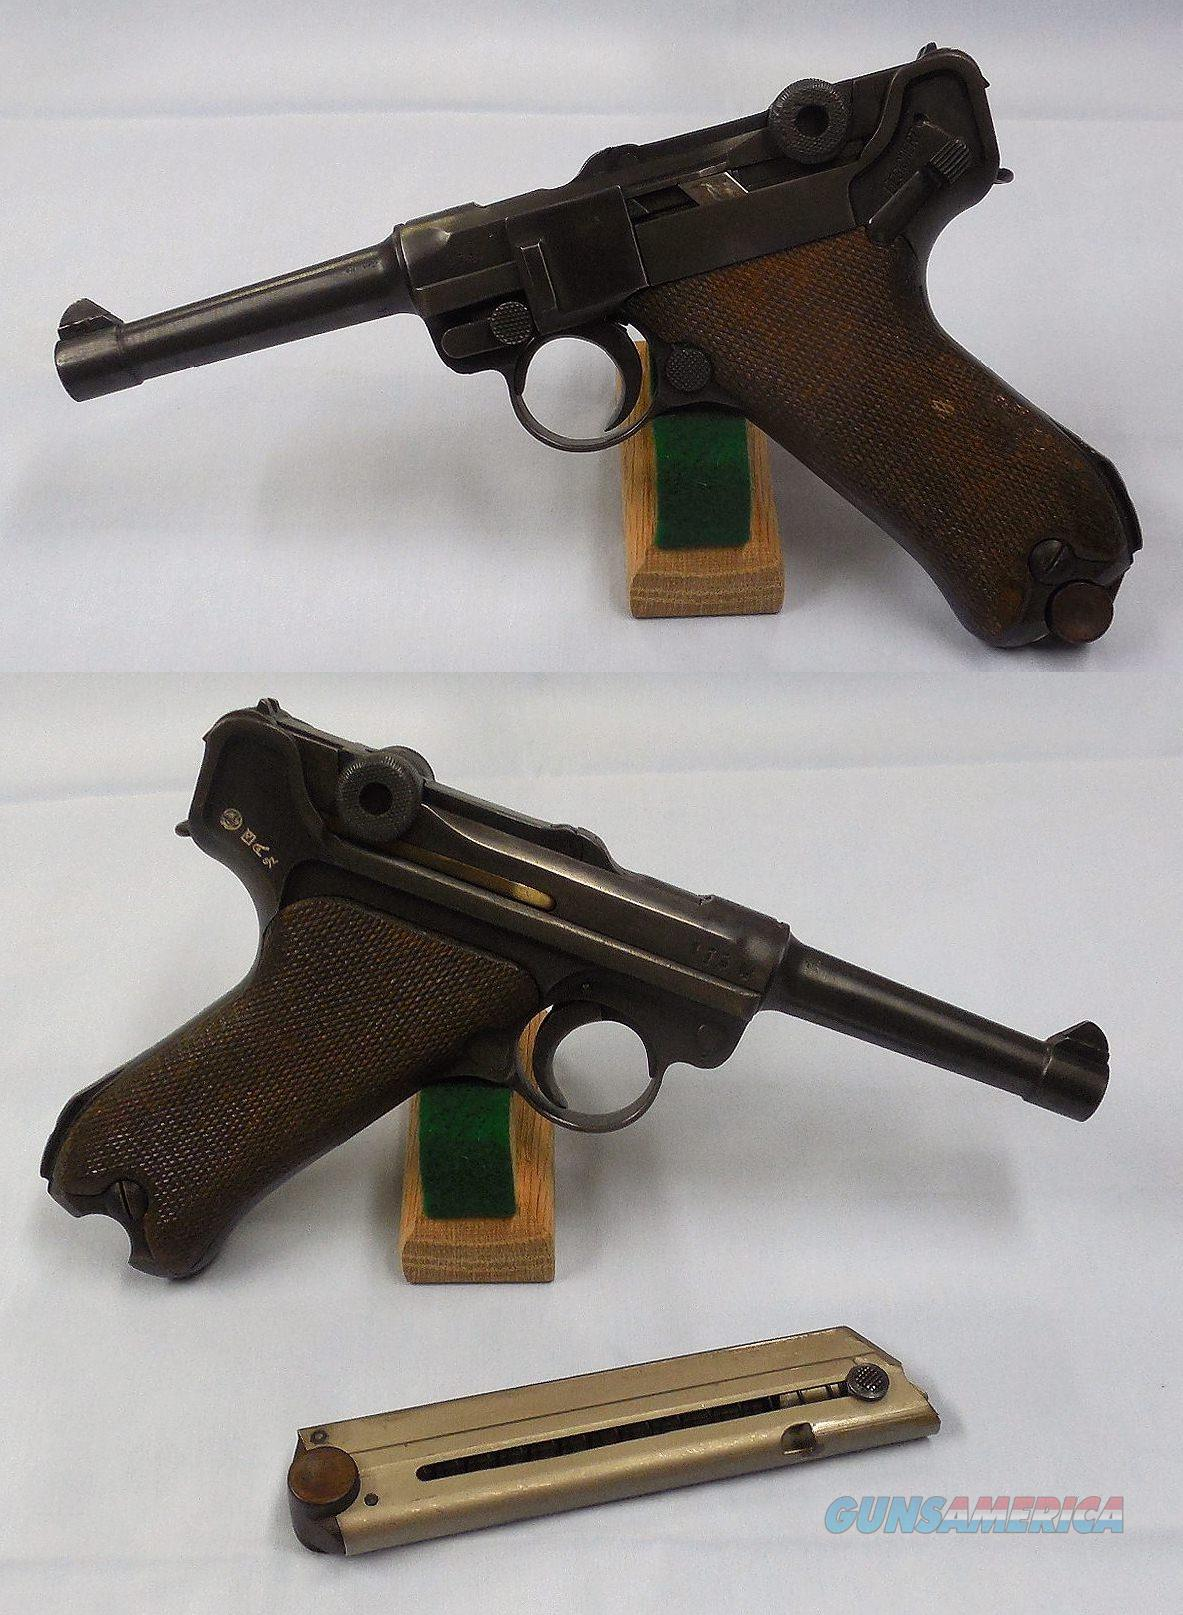 Luger P.08 Pistol with Thai Police Markings  Guns > Pistols > Luger Pistols